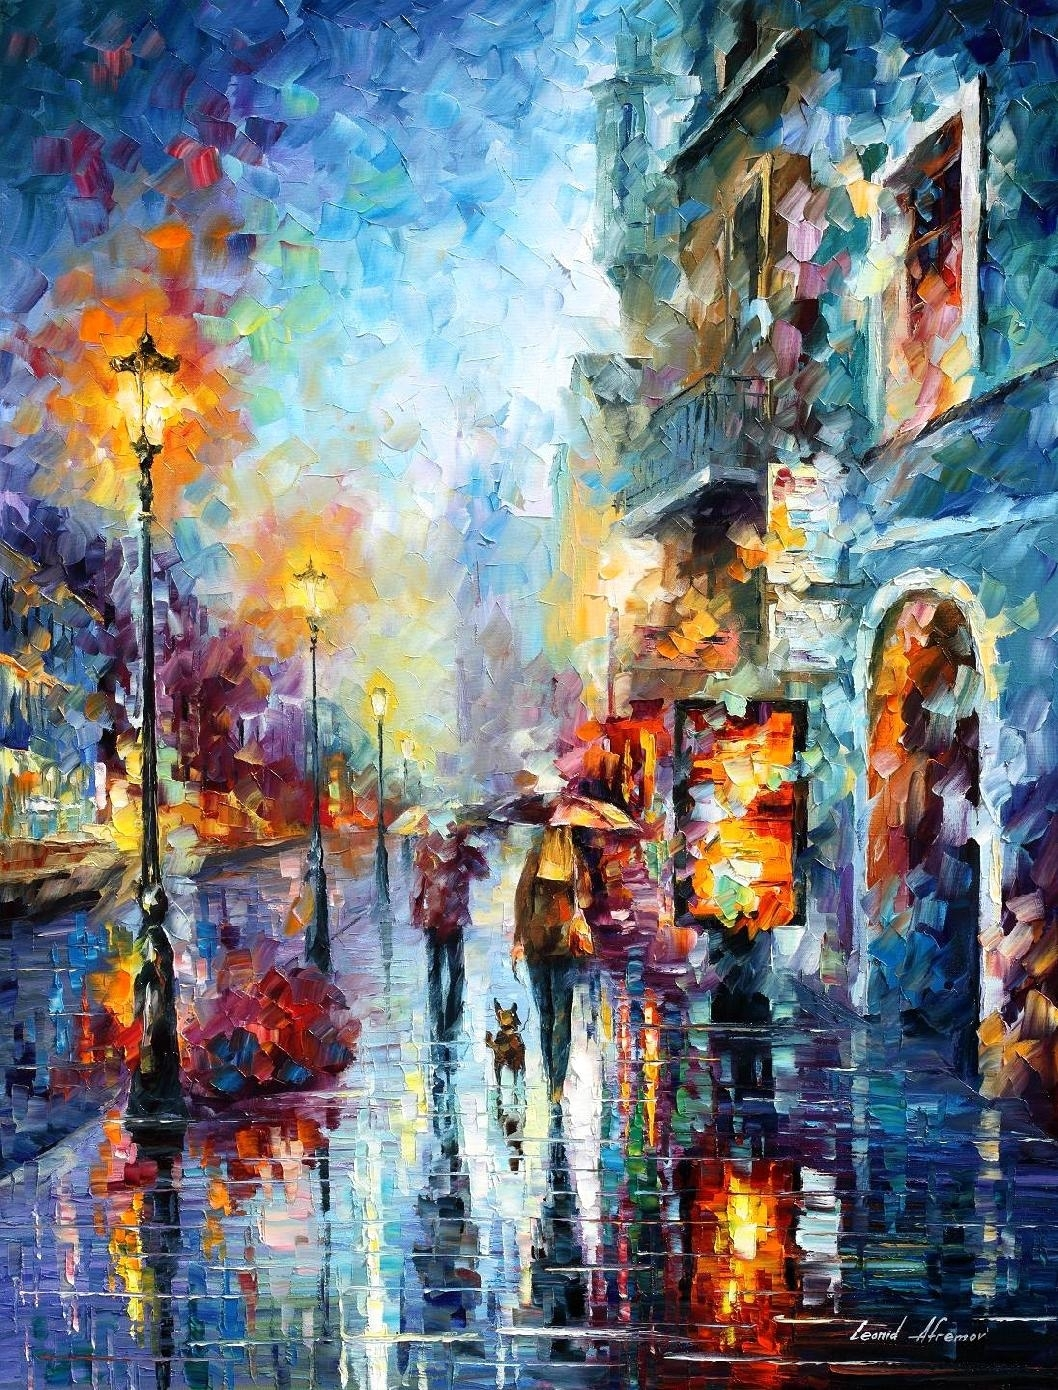 Abstract Wall Artfamous Painter Leonid Afremov For Your Room Within Most Recent Happiness Abstract Wall Art (View 3 of 20)